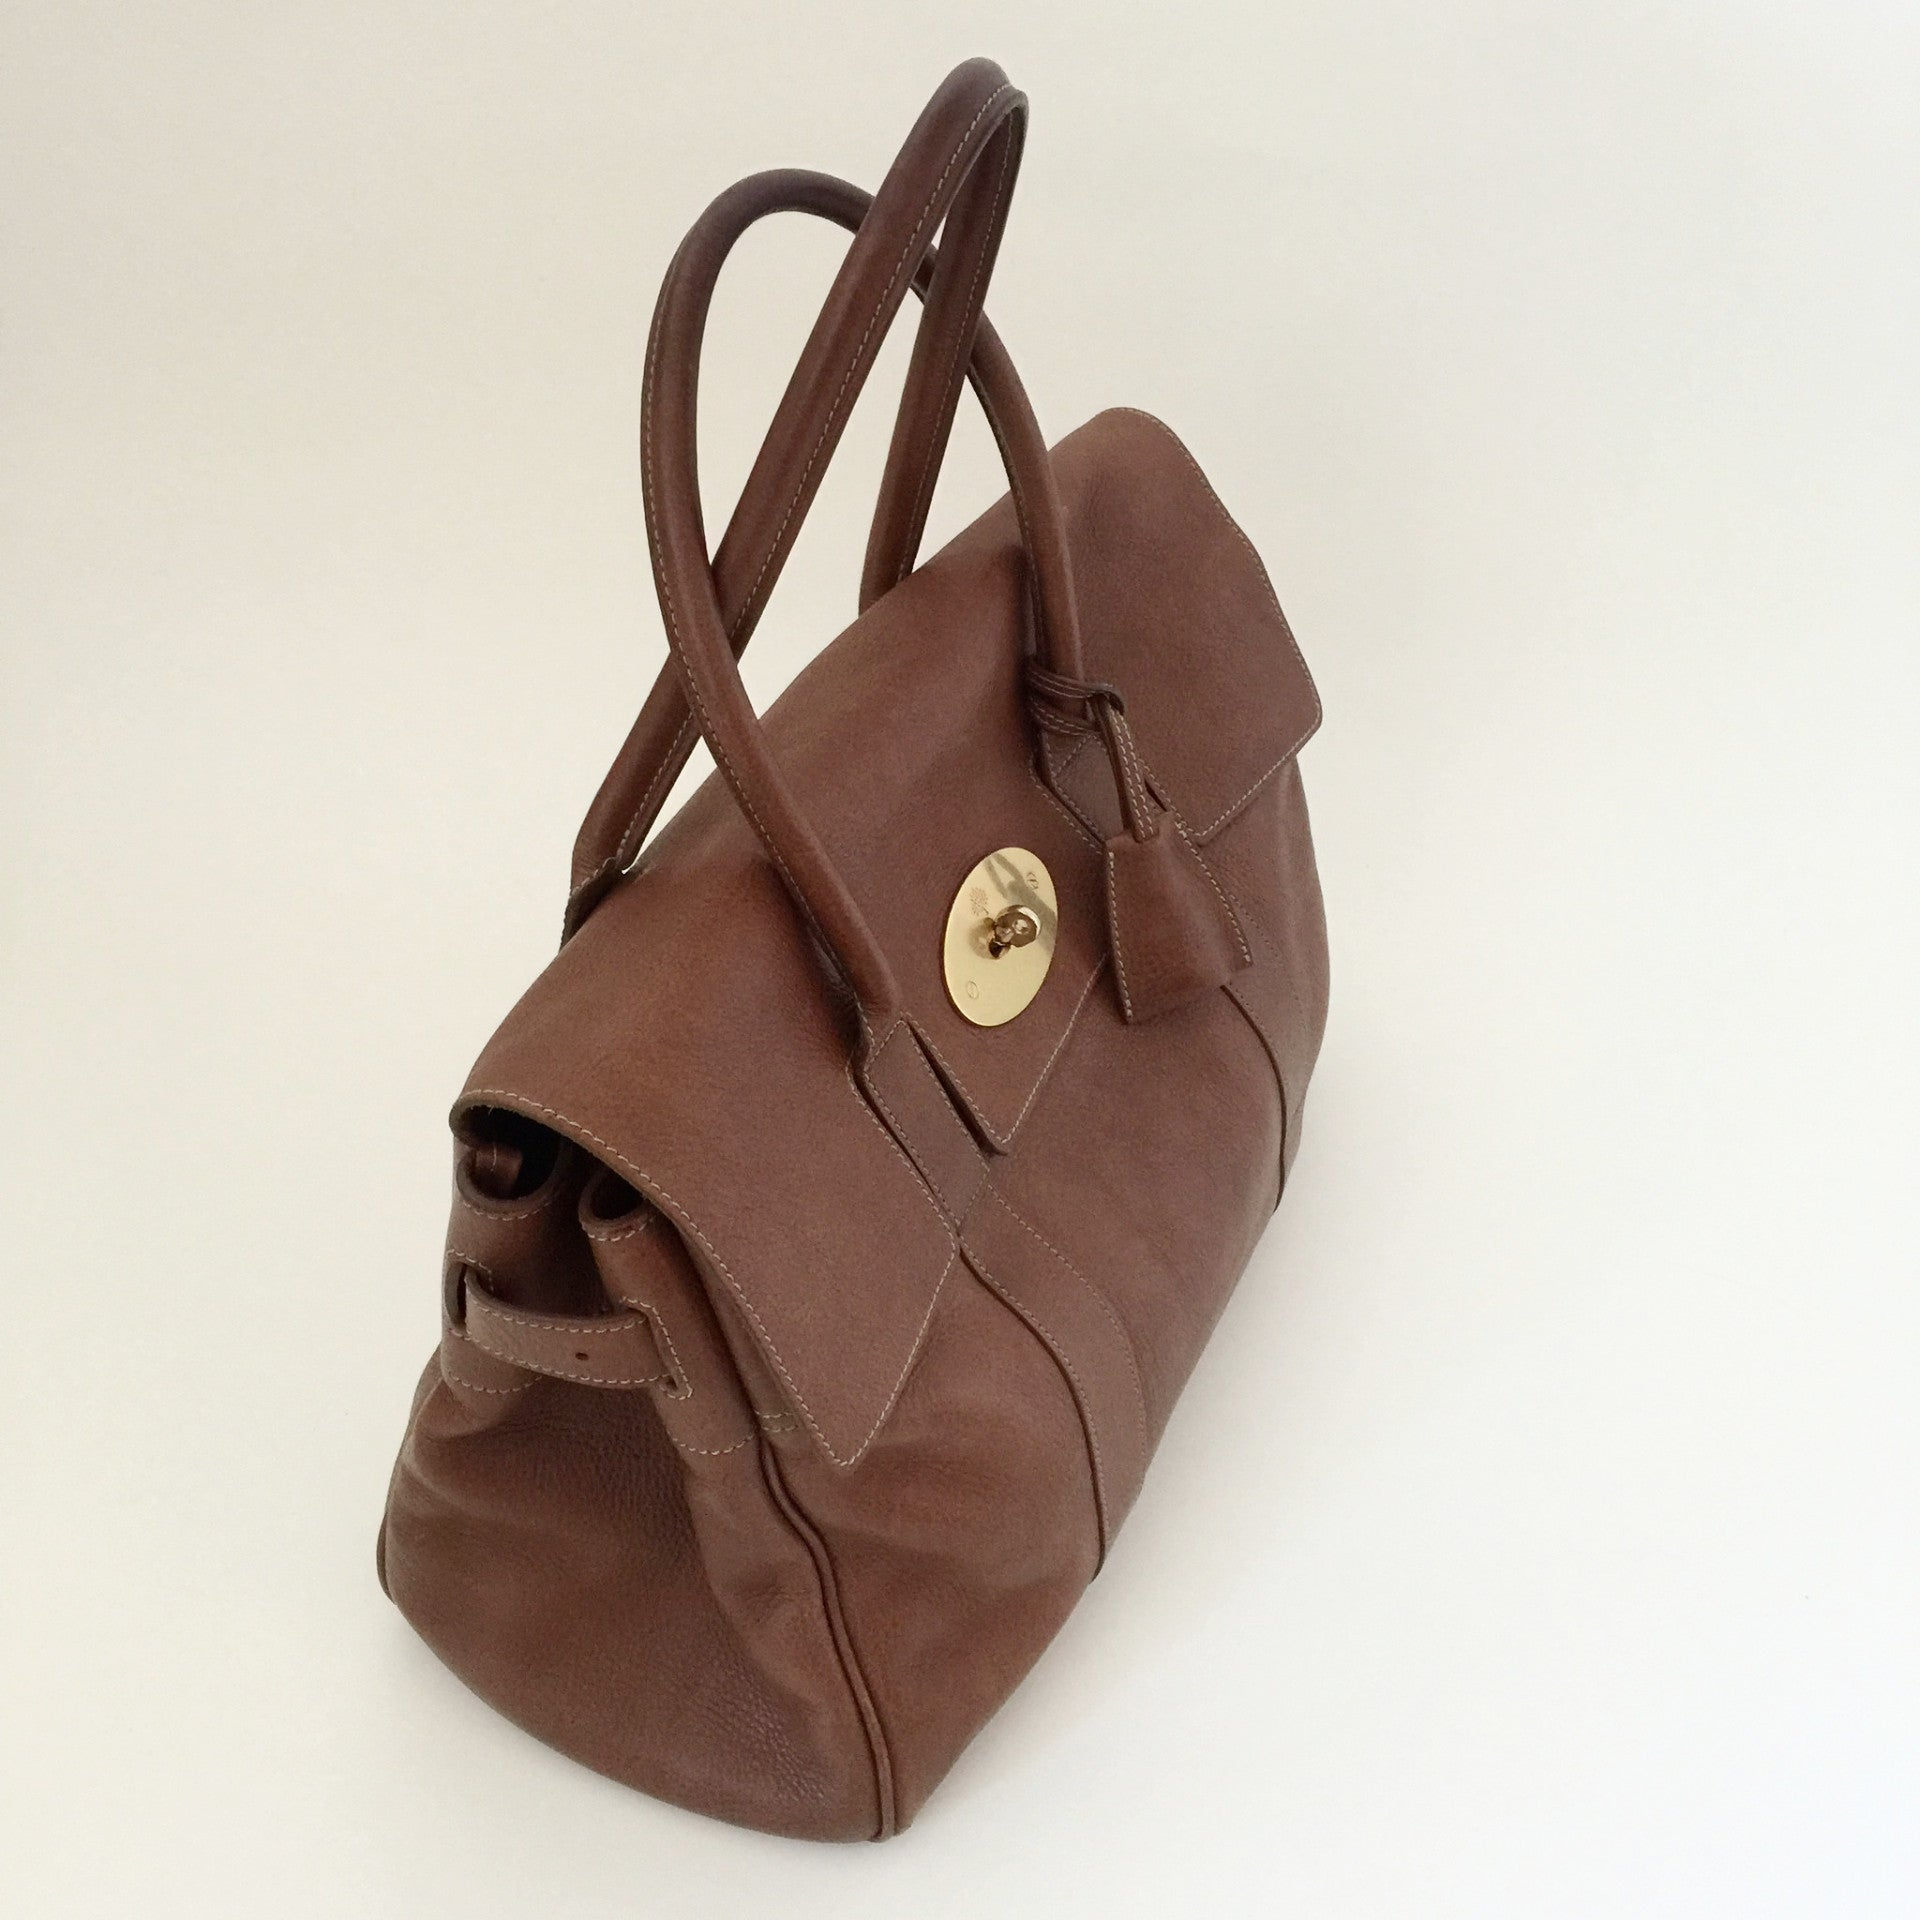 Authentic MULBERRY Bayswater Tote